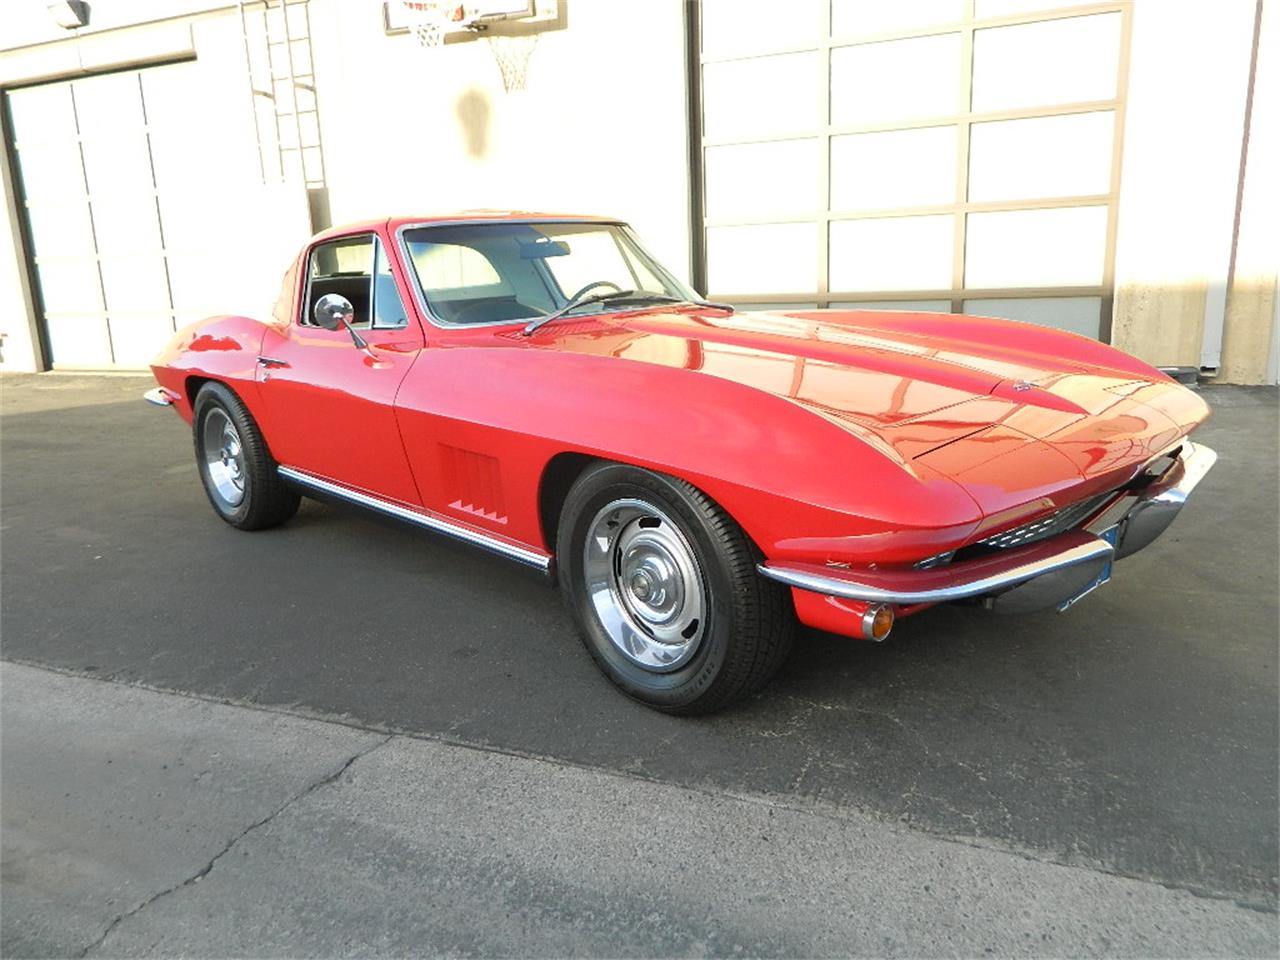 Large Picture of '88 Corvette located in California Auction Vehicle Offered by Classic Car Marketing, Inc. - P3H8